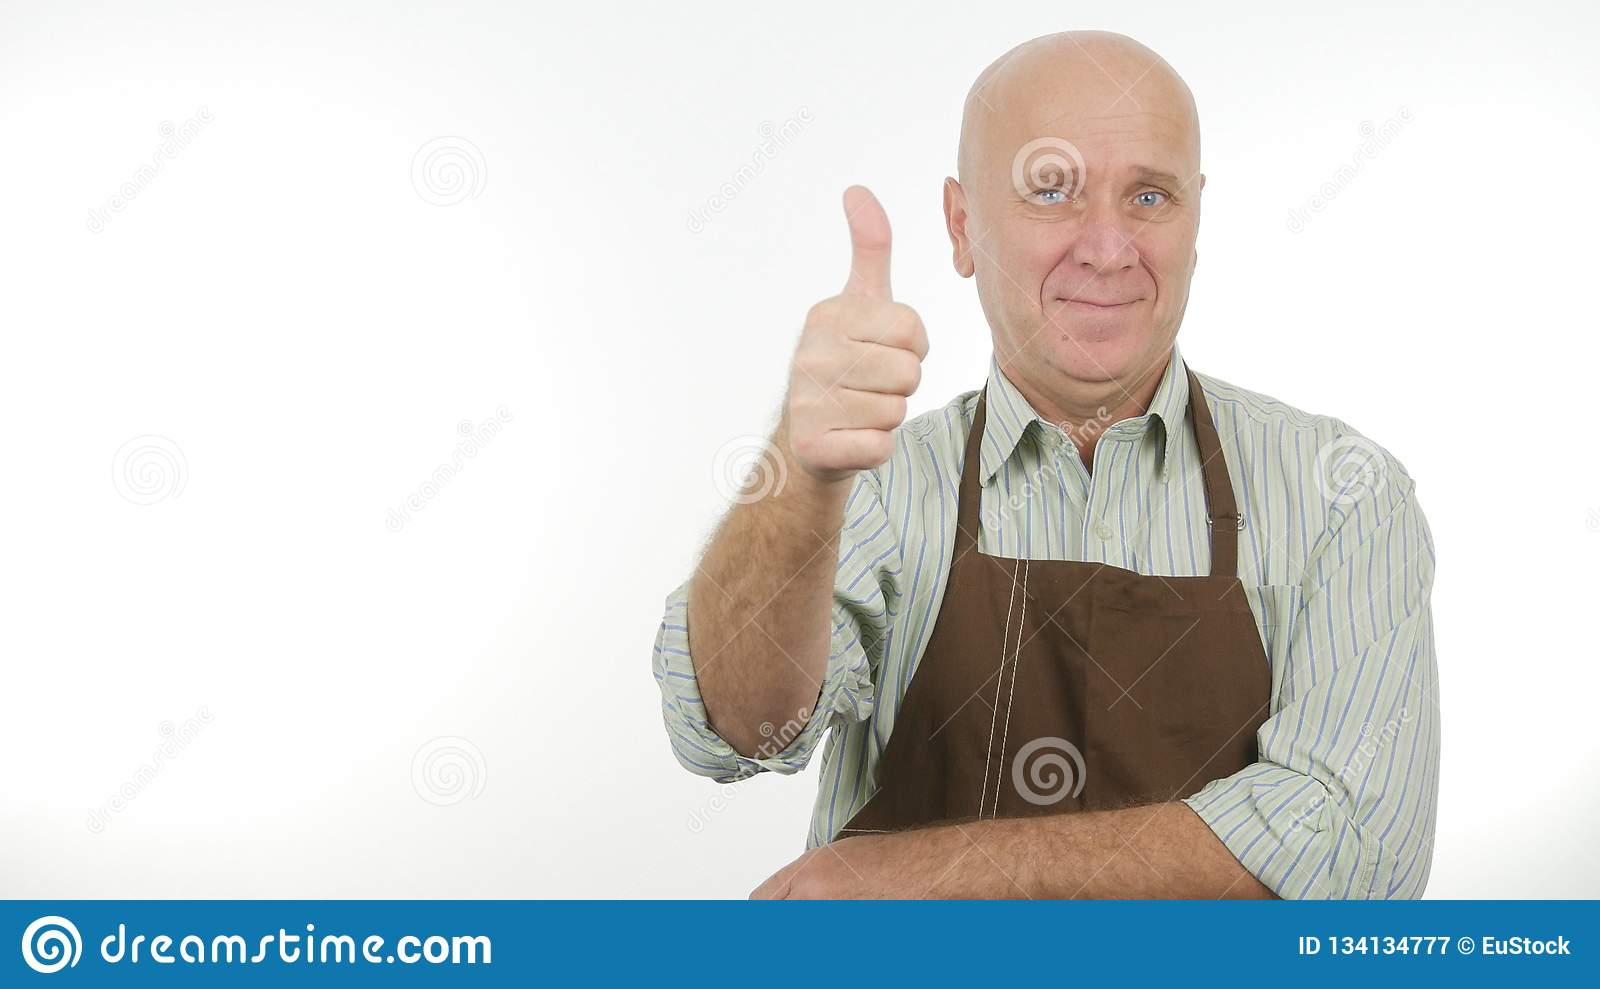 Happy Person Wearing Kitchen Apron Thumbs Up Good Job Sign